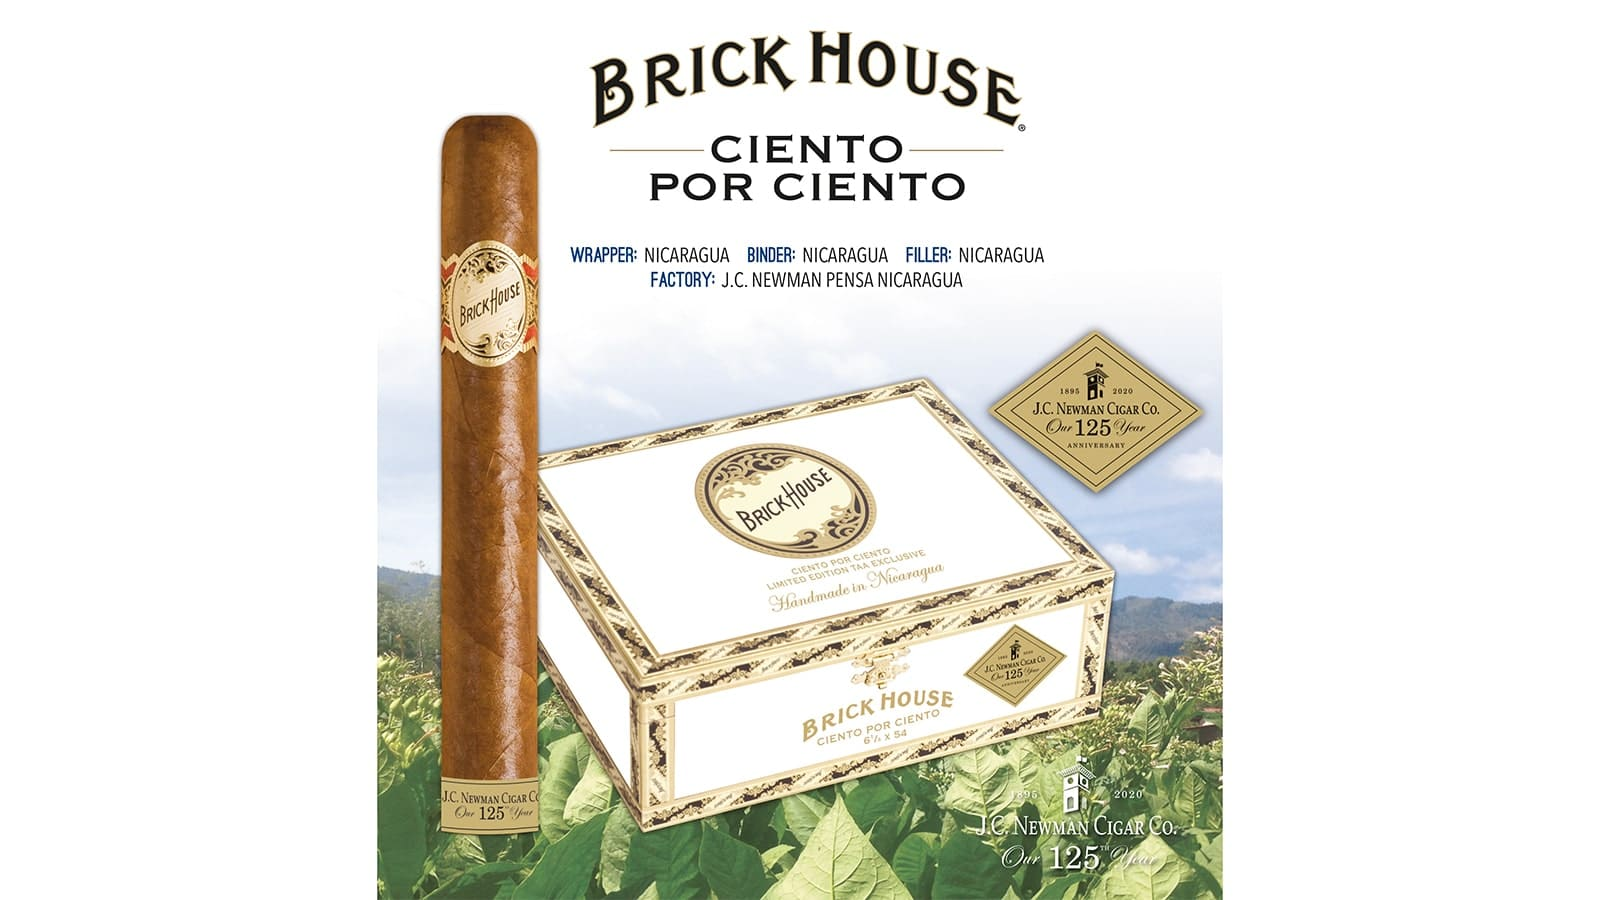 J.C. Newman Releases Limited-Edition Brick House Cigar for TAA